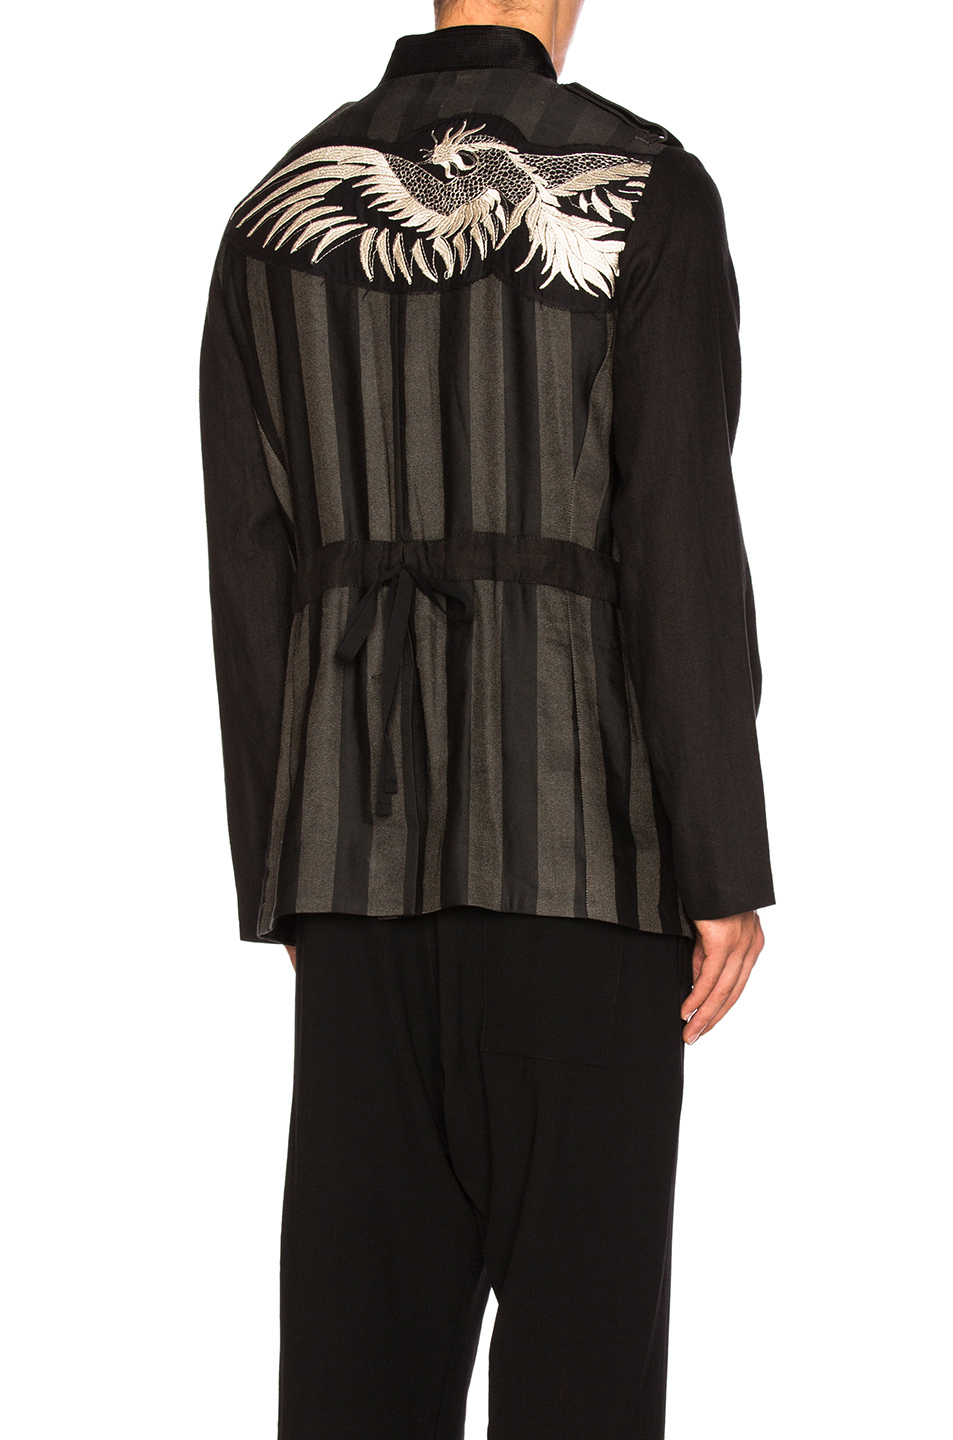 Ann Demeulemeester Jacket in Black,Stripes